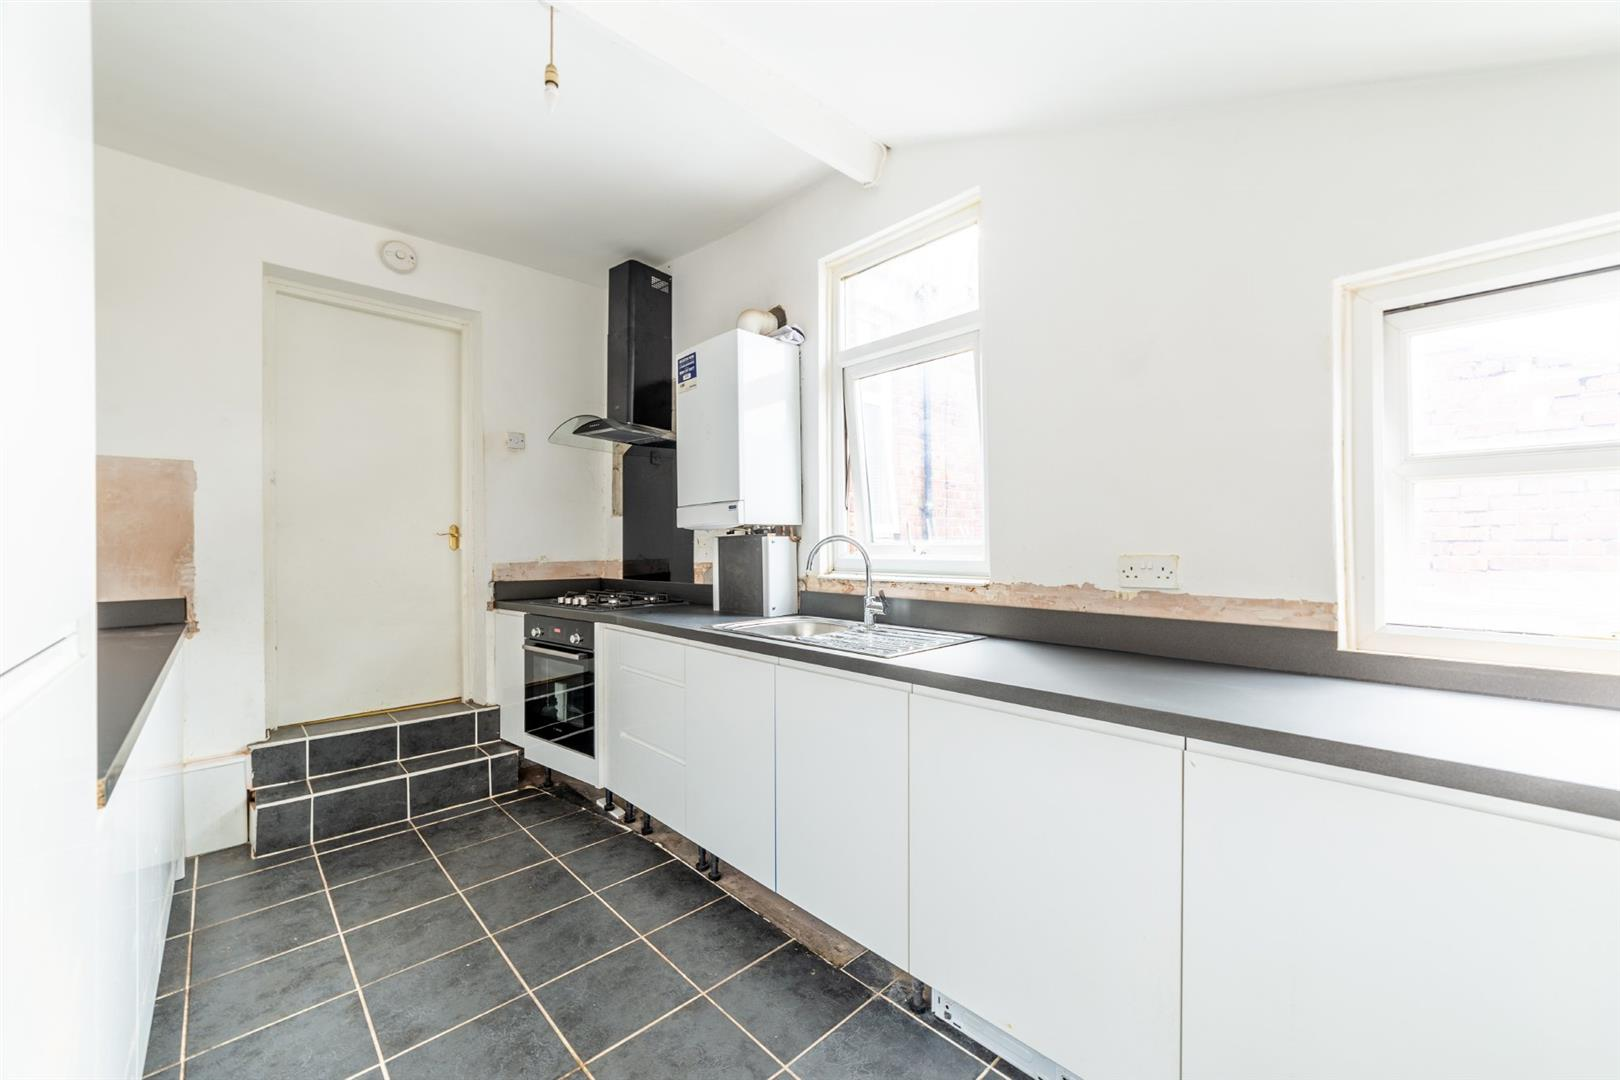 3 bed maisonette to rent in Newcastle Upon Tyne, NE6 5SJ  - Property Image 3